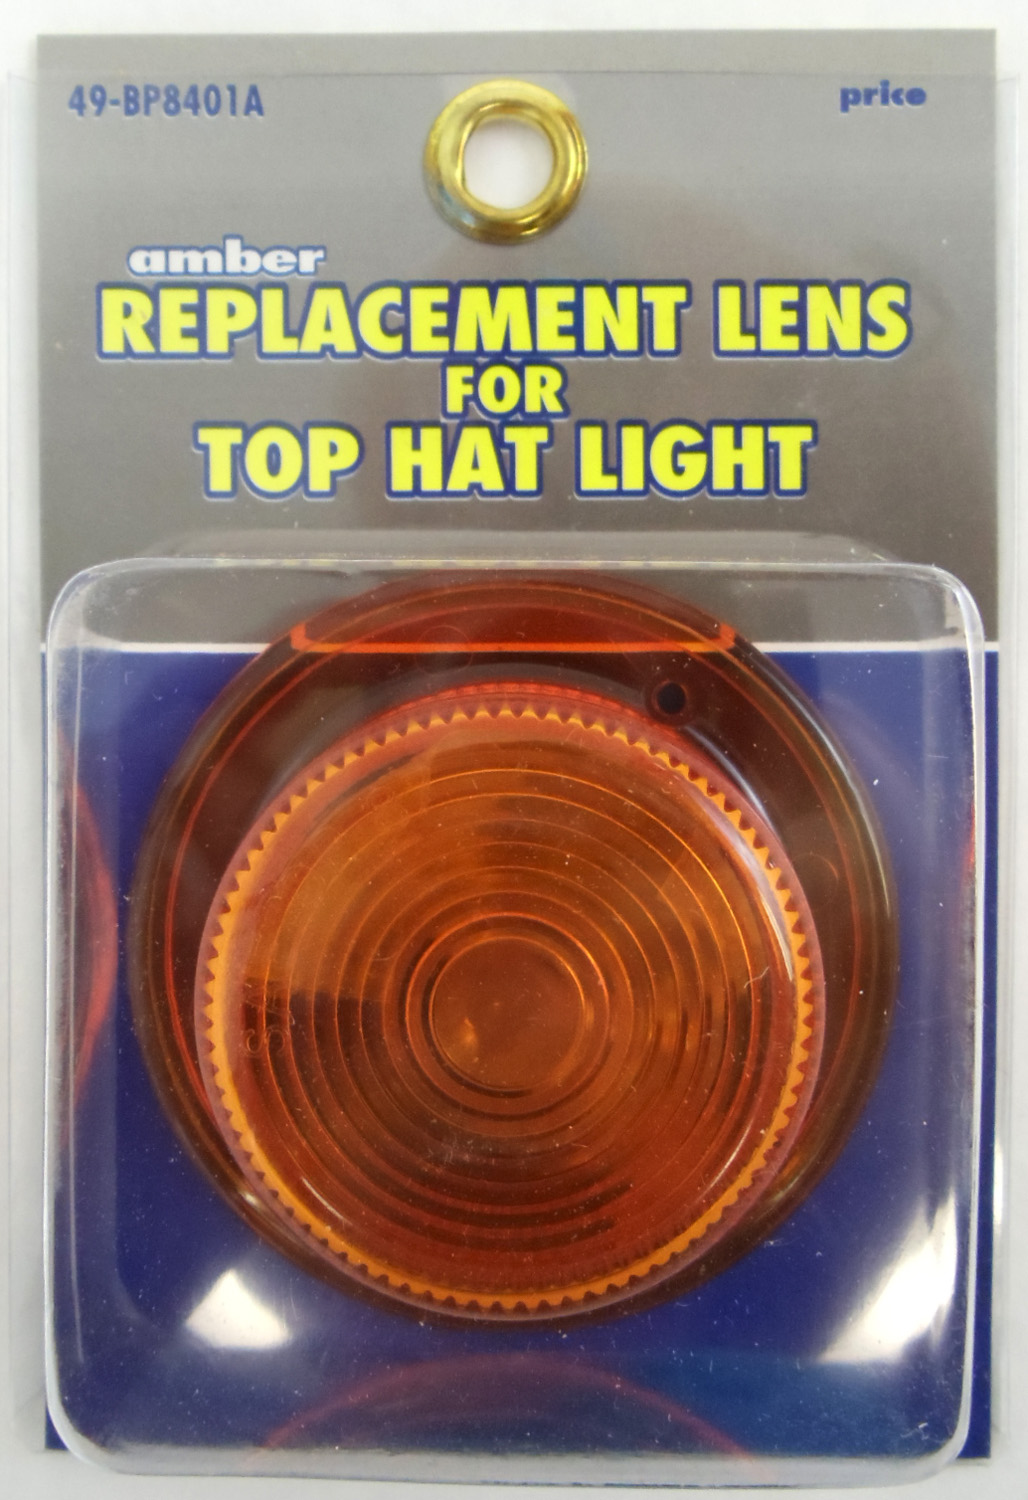 049BP8401A - Amber Replacement Lens For Top Hat Light